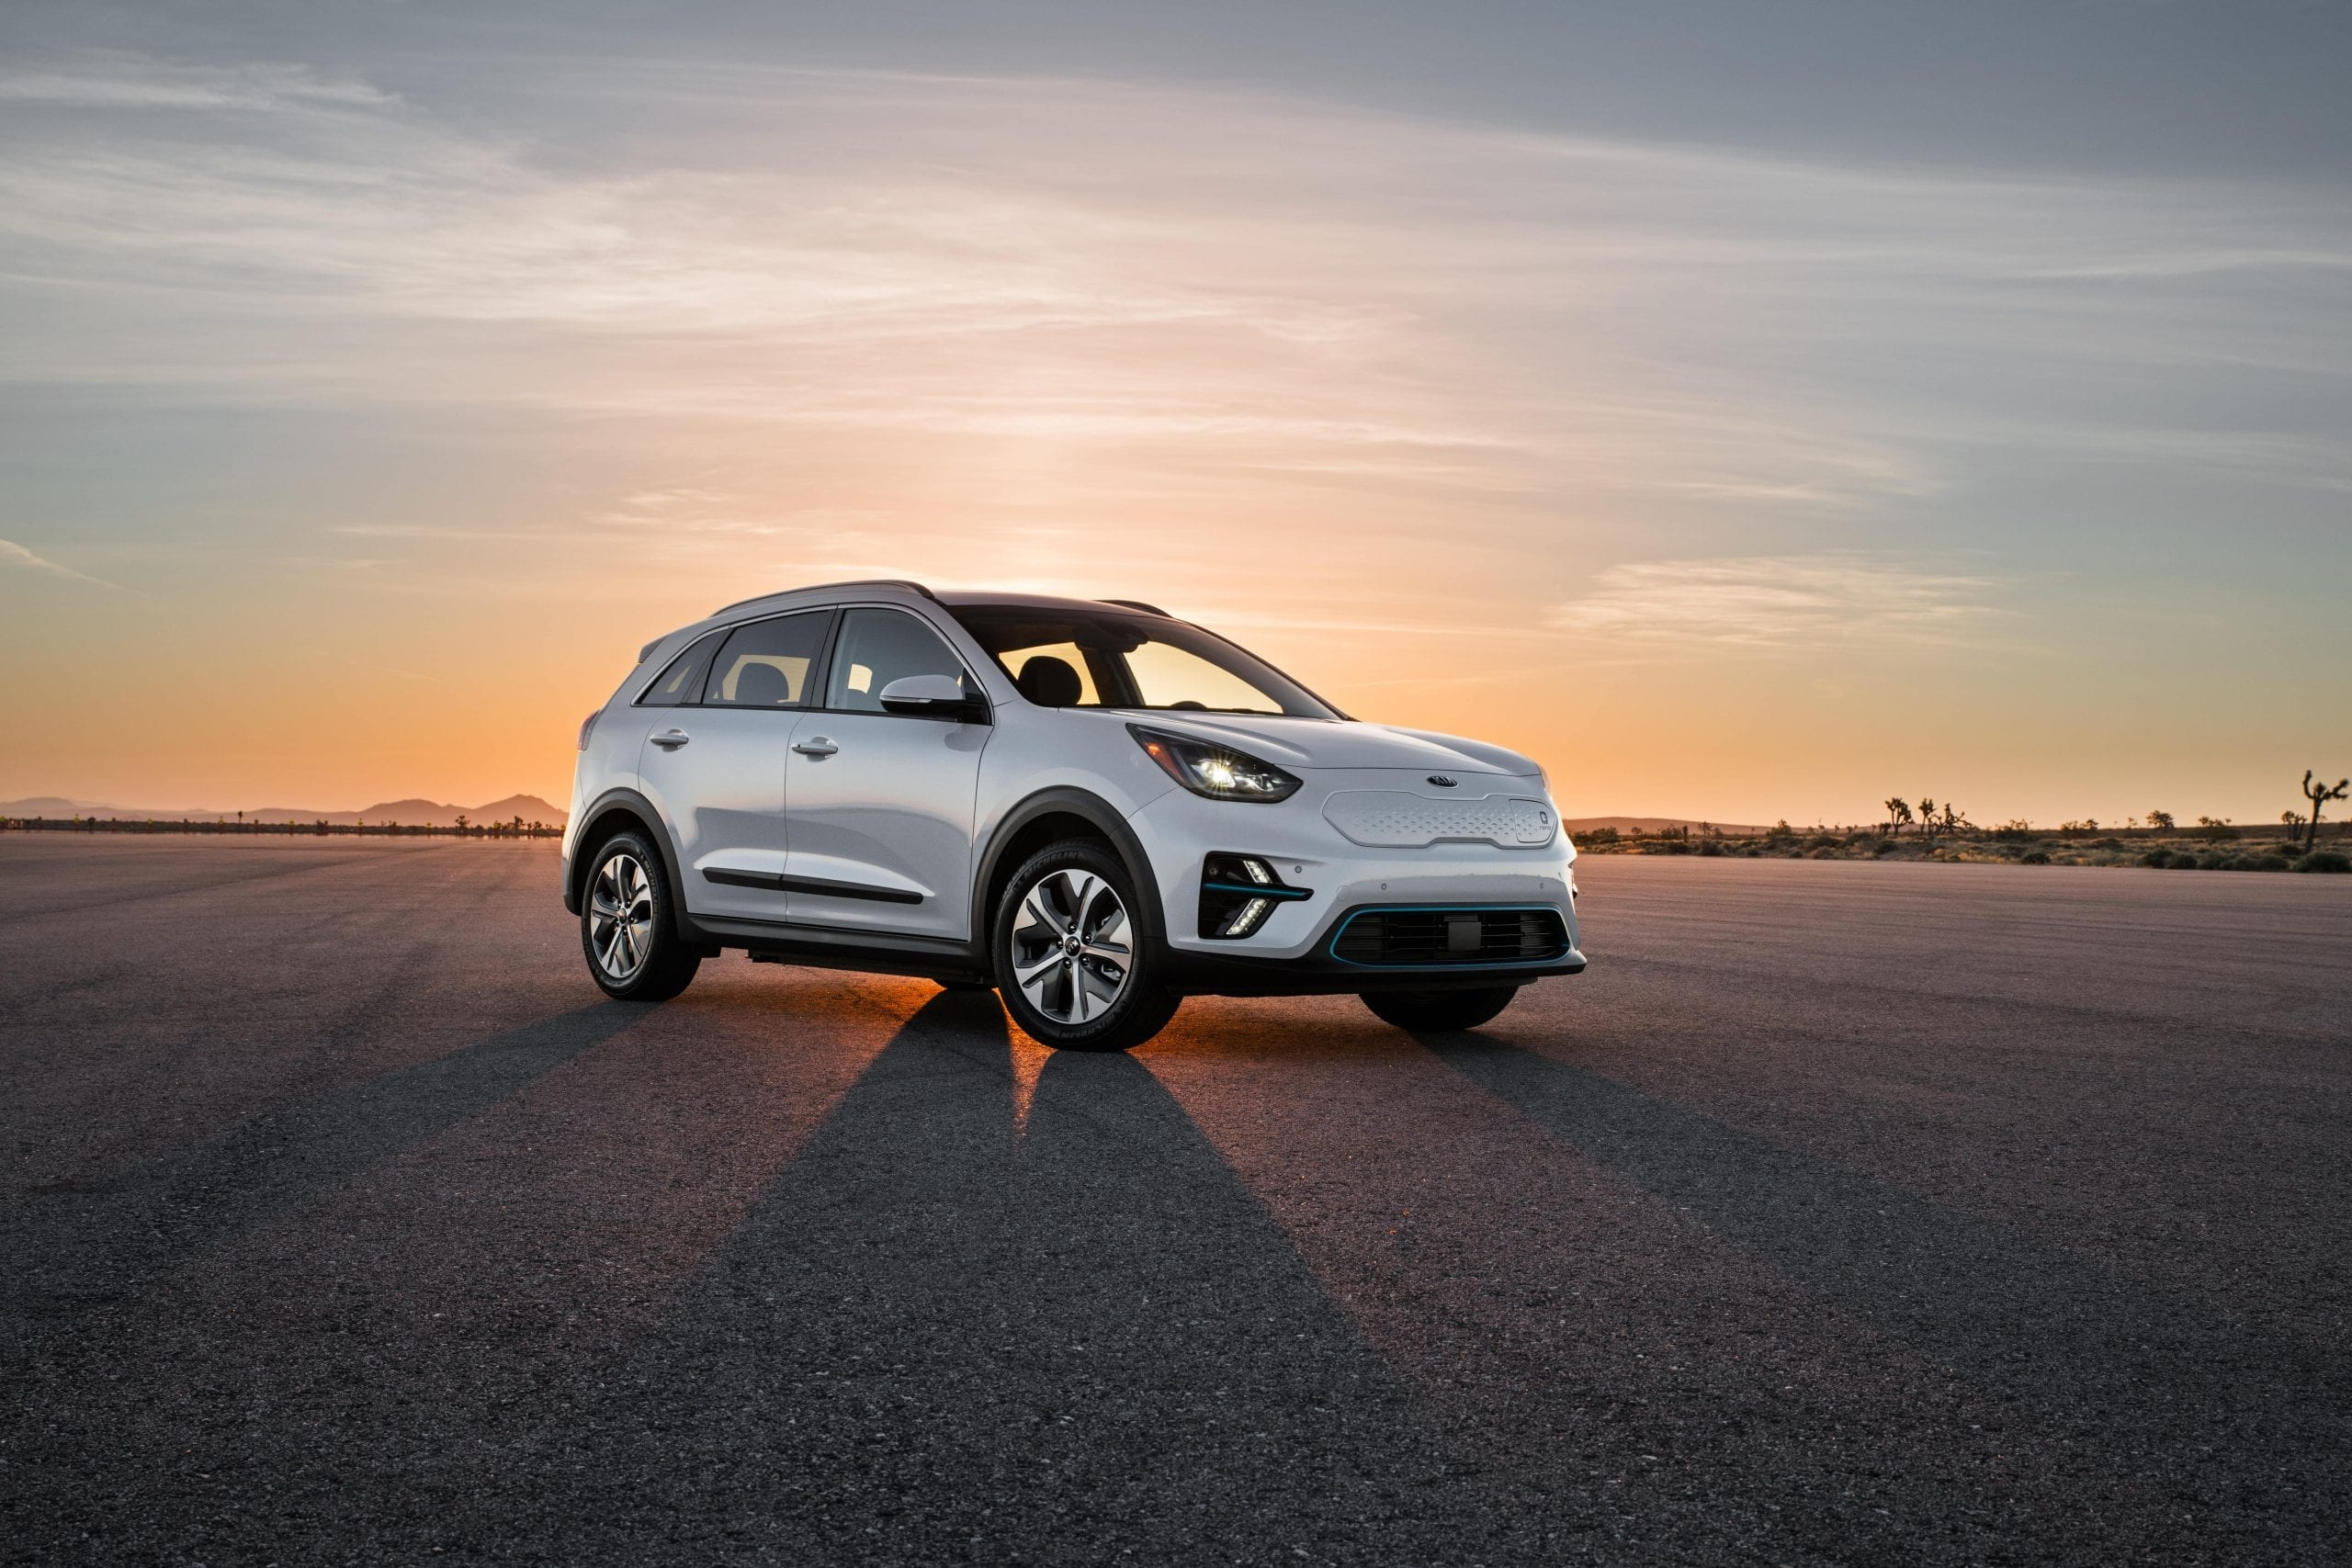 2021 kia niro white outdoor sunset lot